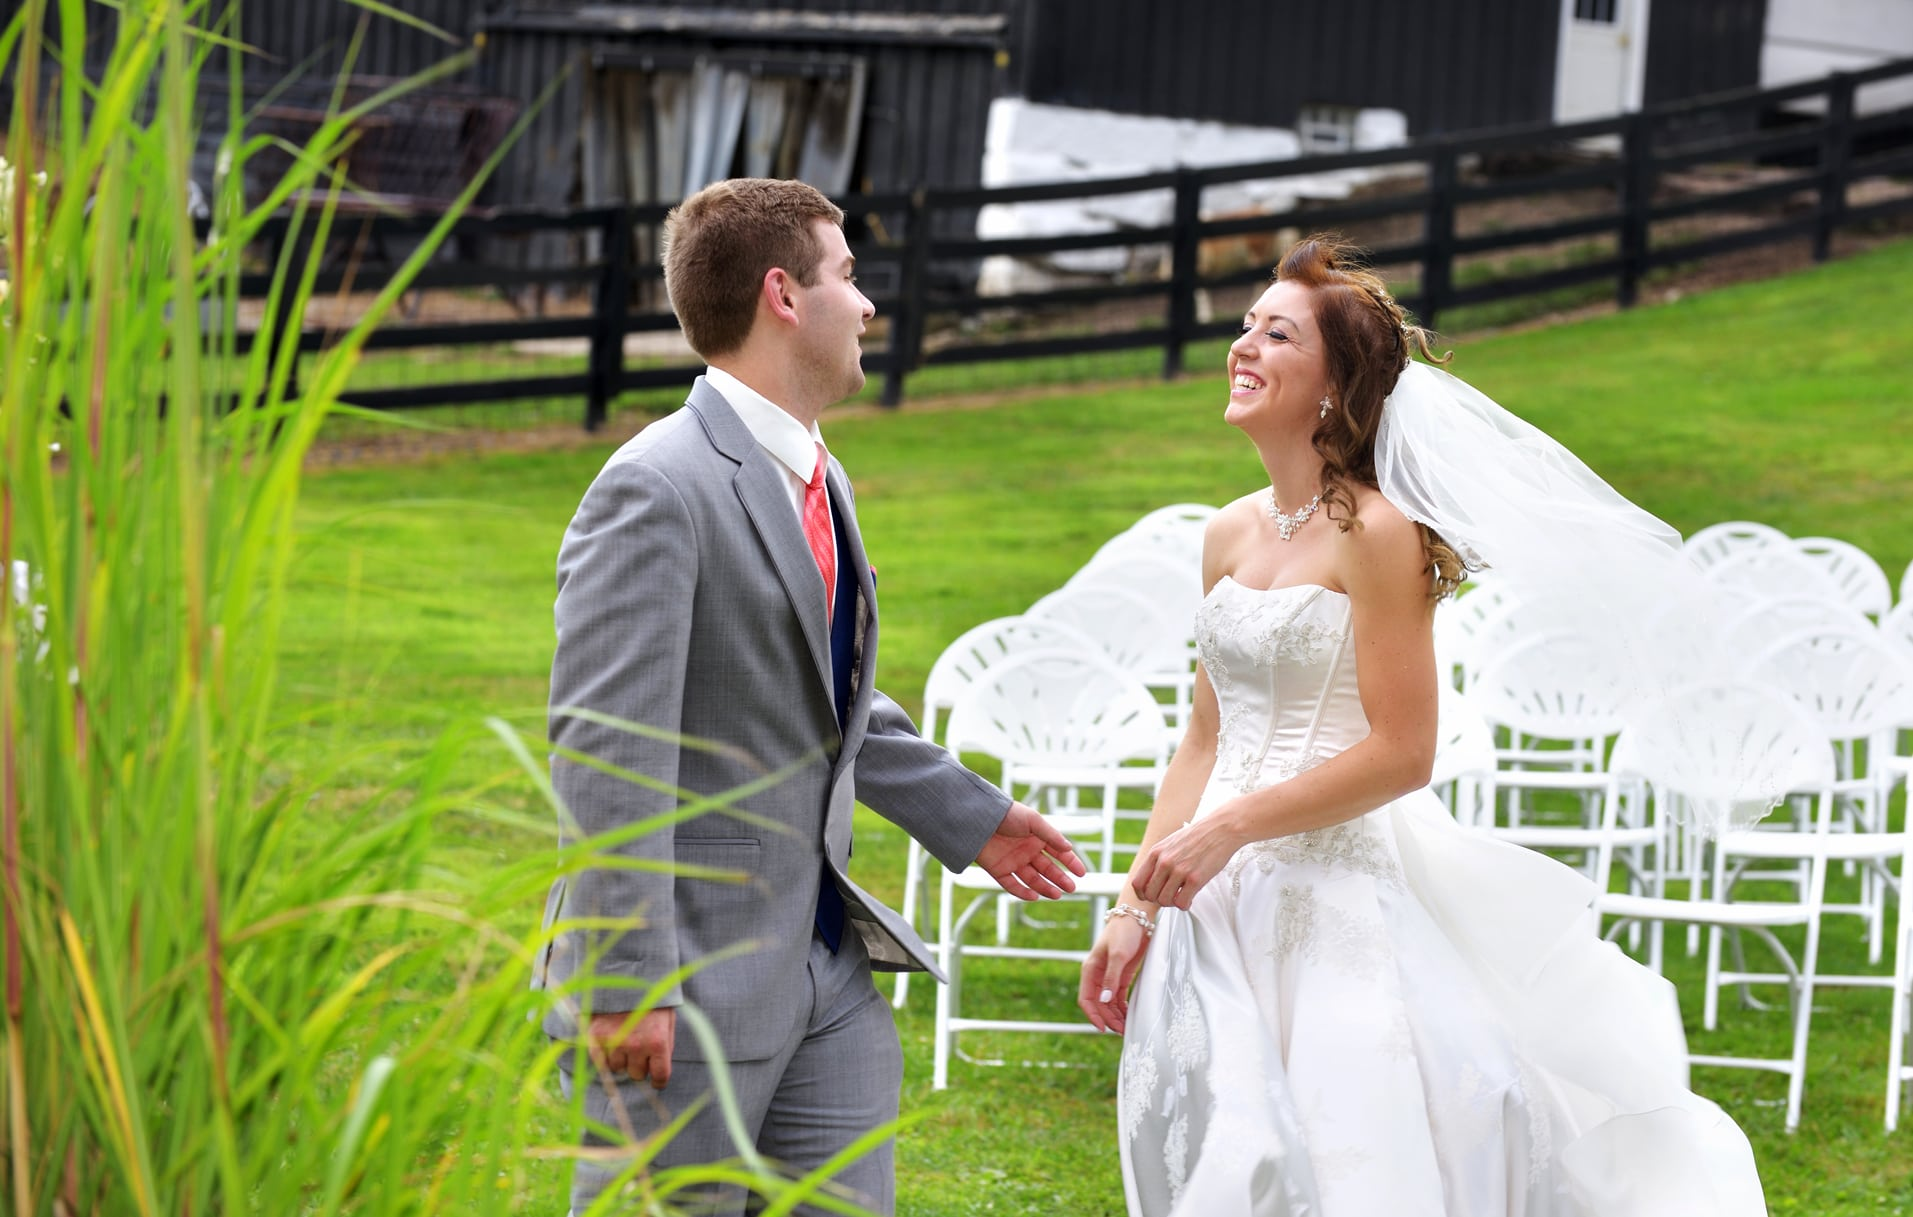 first look wedding photography copley ohio